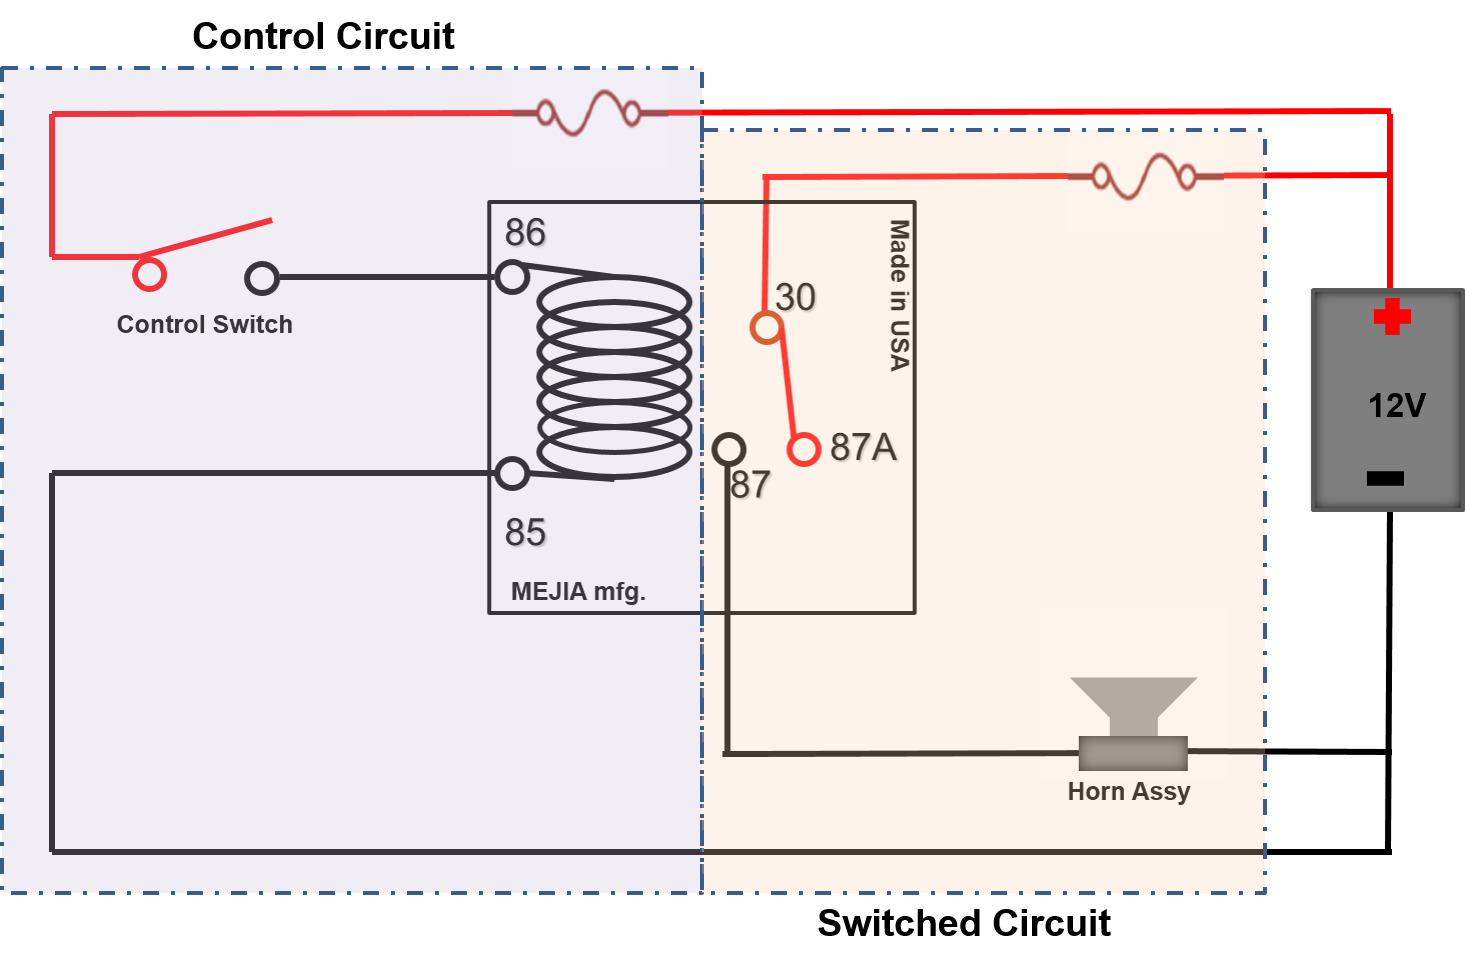 Switch drawing circuit. Relay function and operations